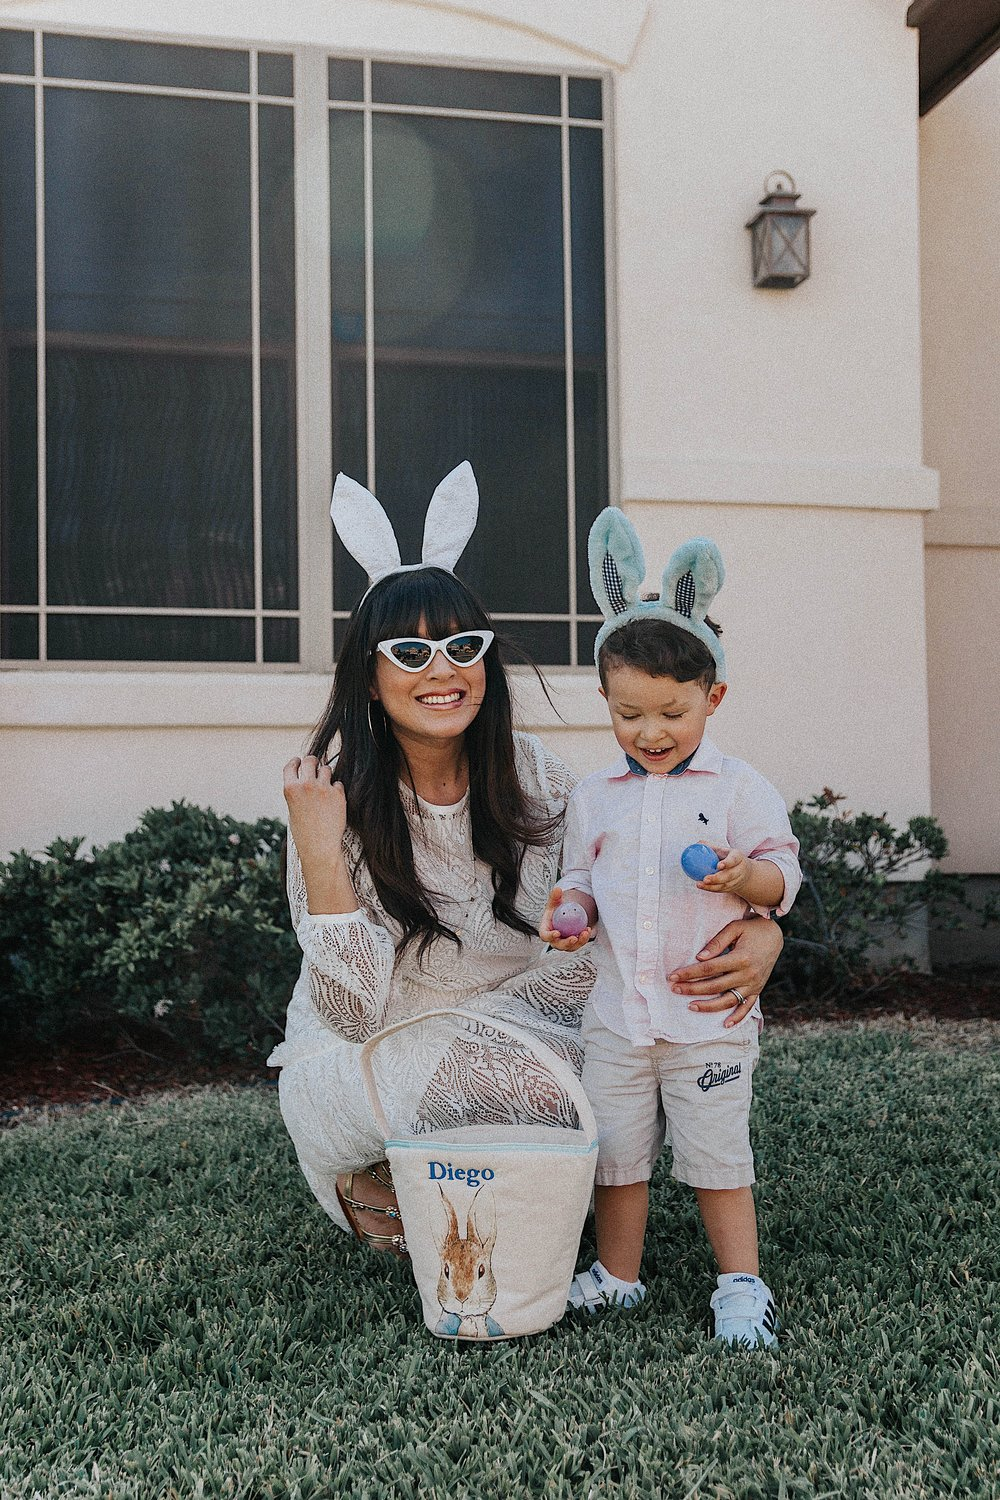 Cute Easter photos spanglishfashion